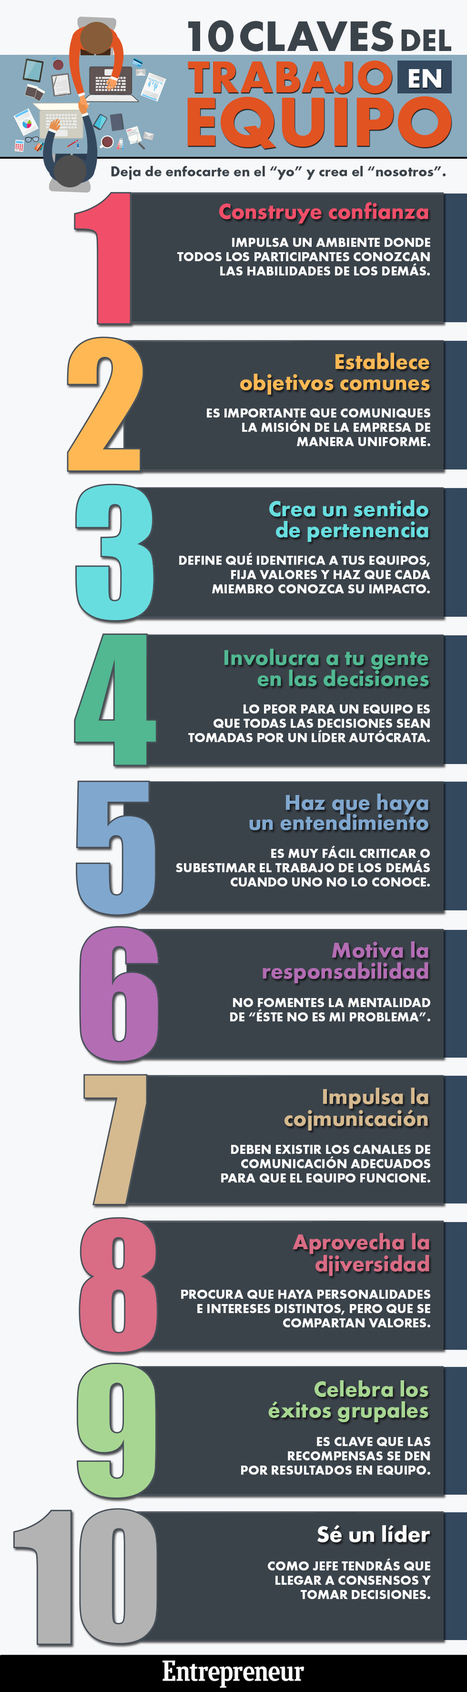 10 claves del trabajo en equipo | Educación Virtual UNET | Scoop.it